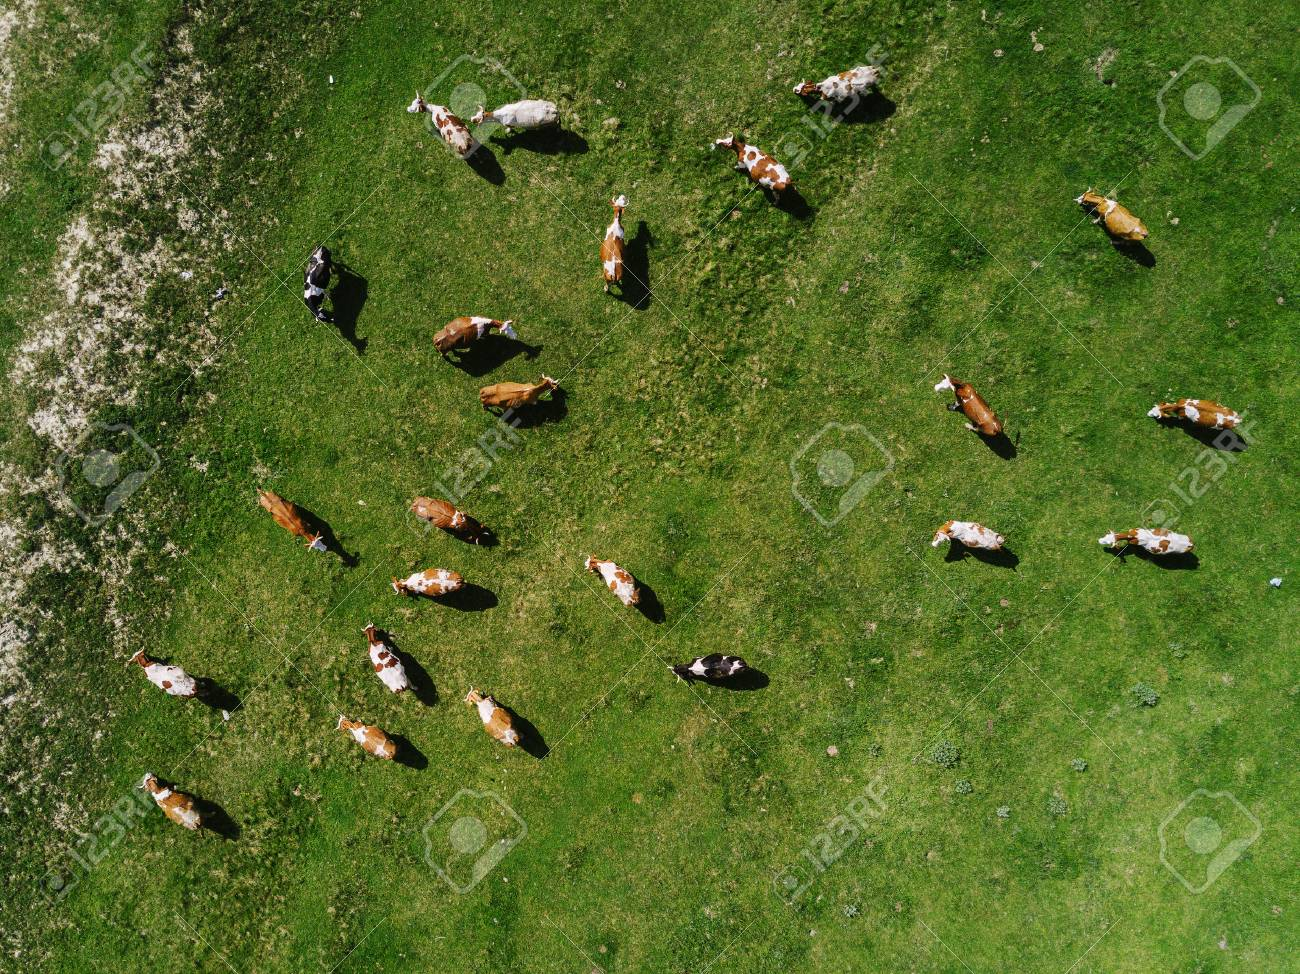 Aerial view of cows herd grazing on pasture field, top view drone pov - 78762265